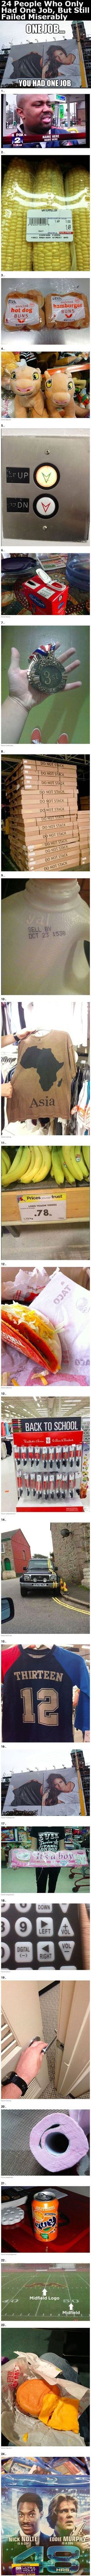 24 People Who Only Had One Job, But Still Failed Miserably funny memes lol hilarious humor funny pictures wtf funny images